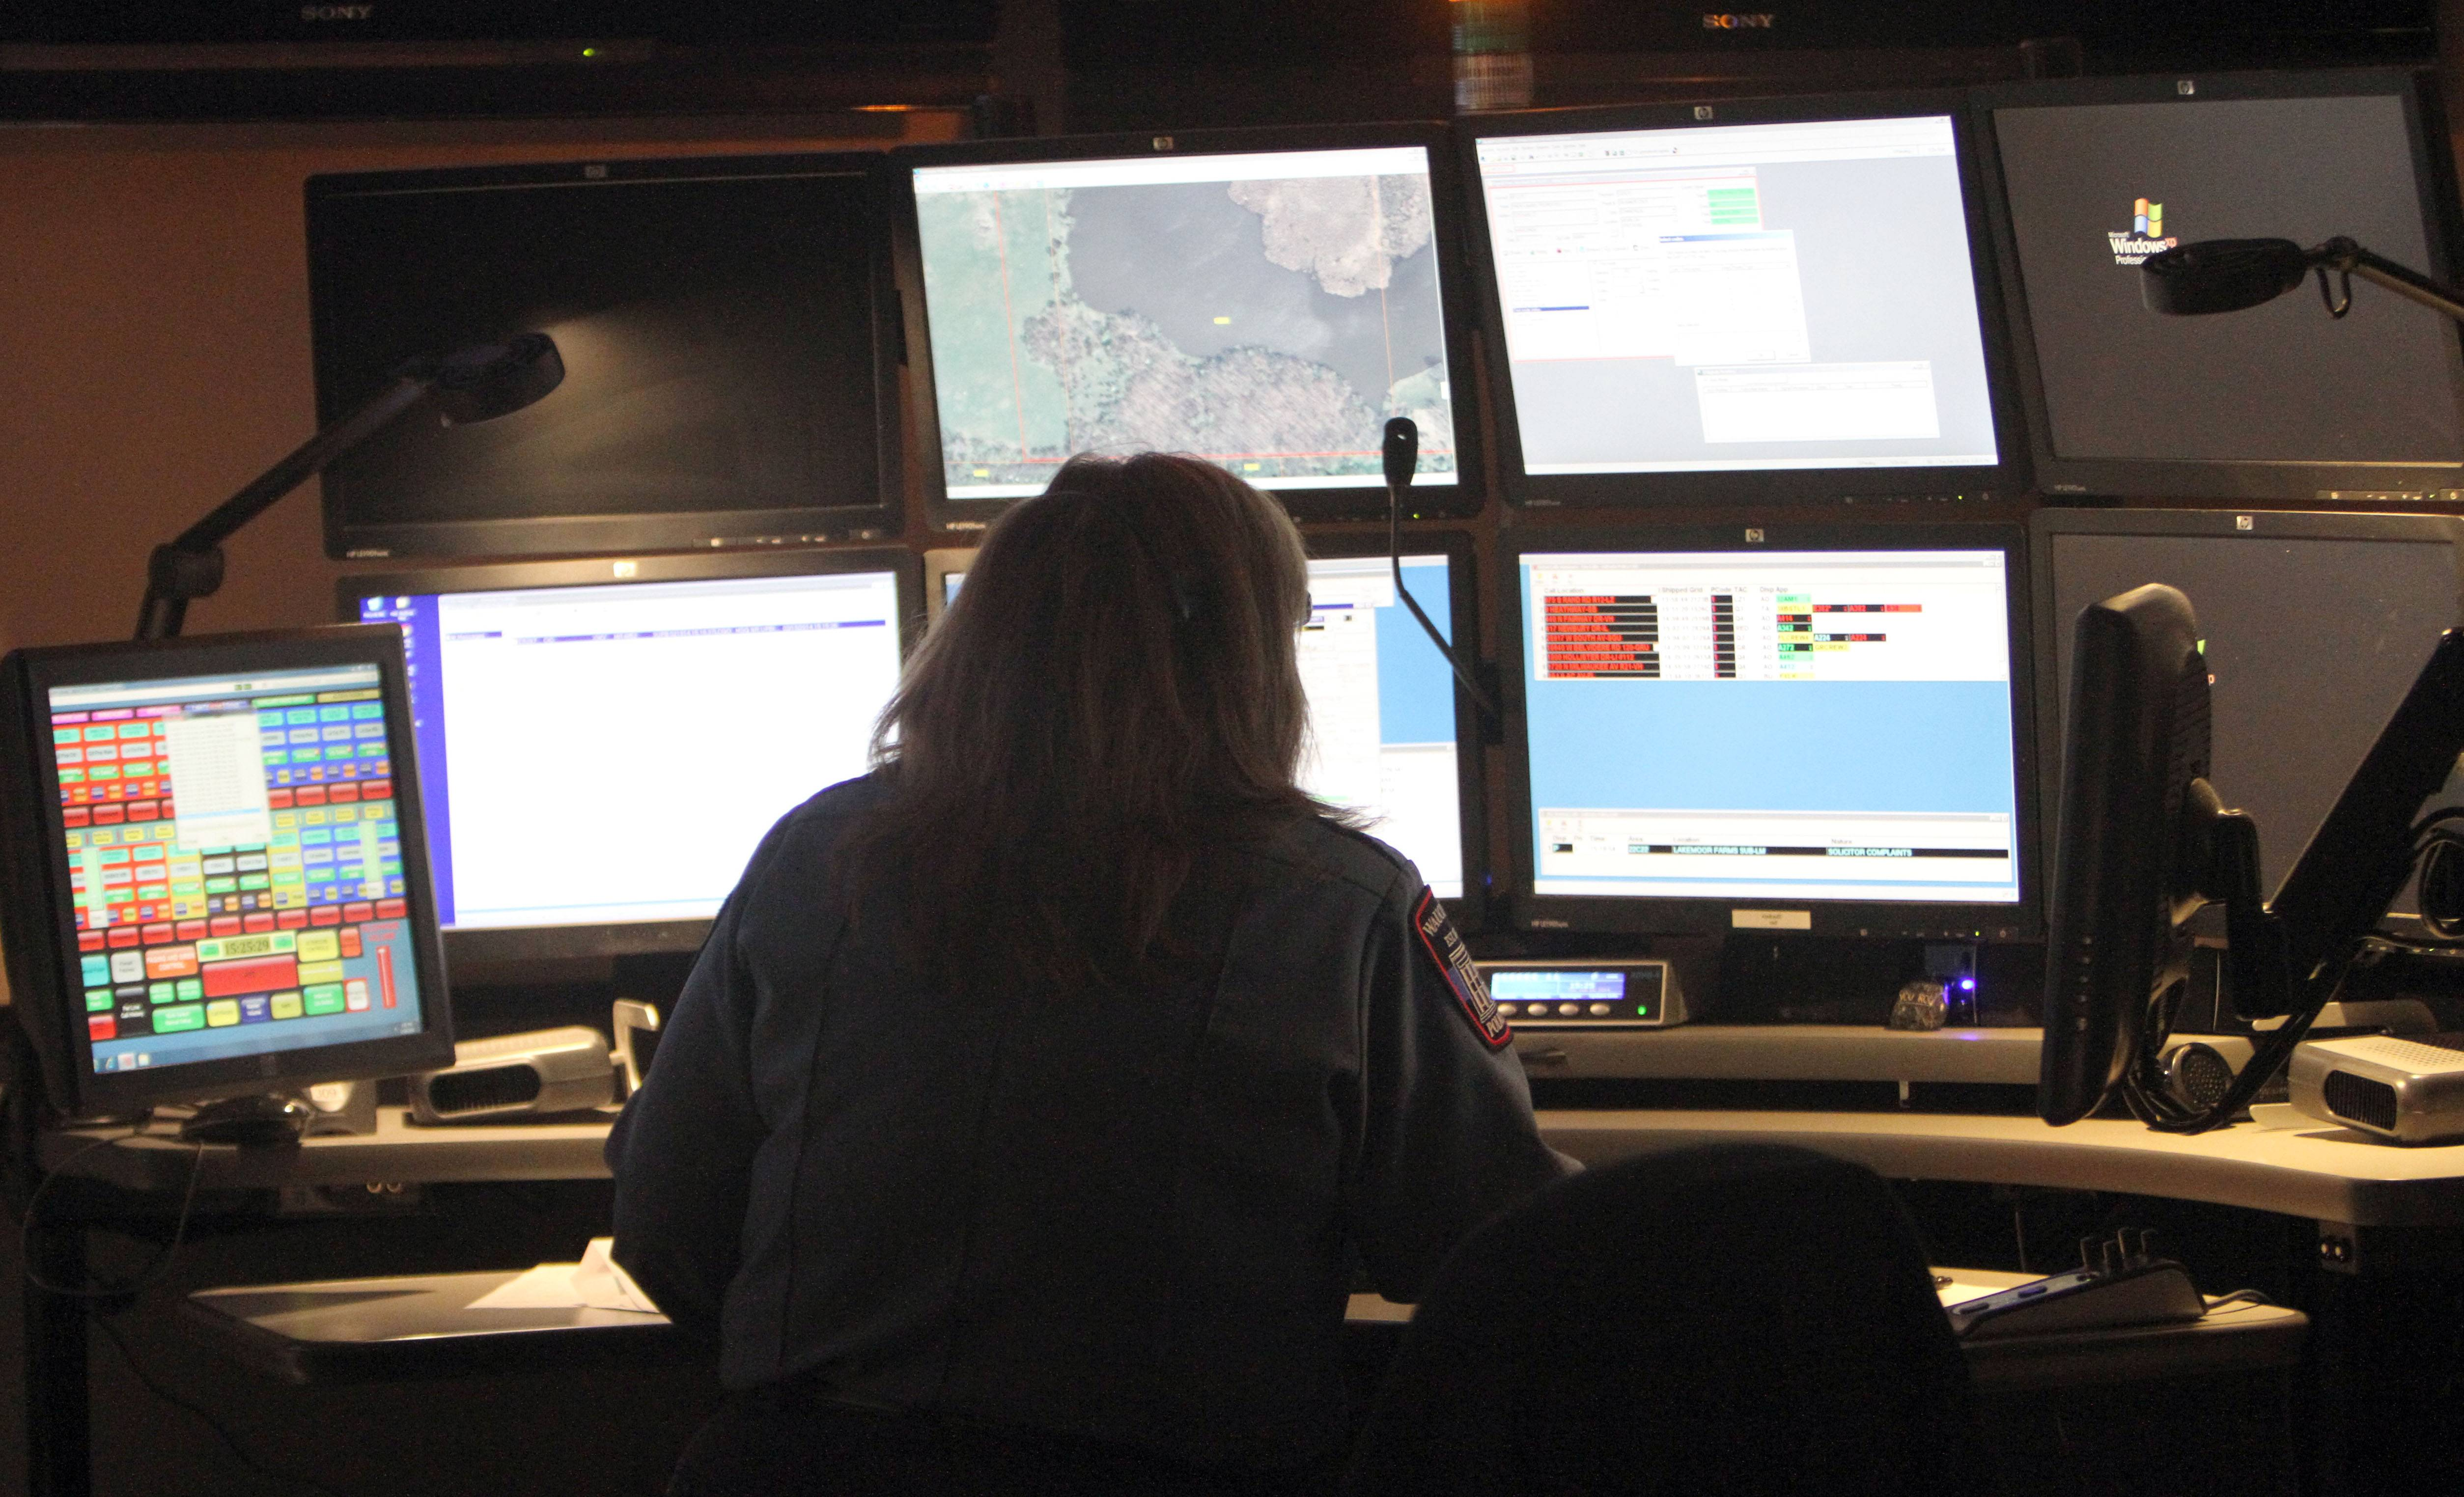 Wauconda dispatcher Wauconda officials are considering plans to close the 911 center at the police station.